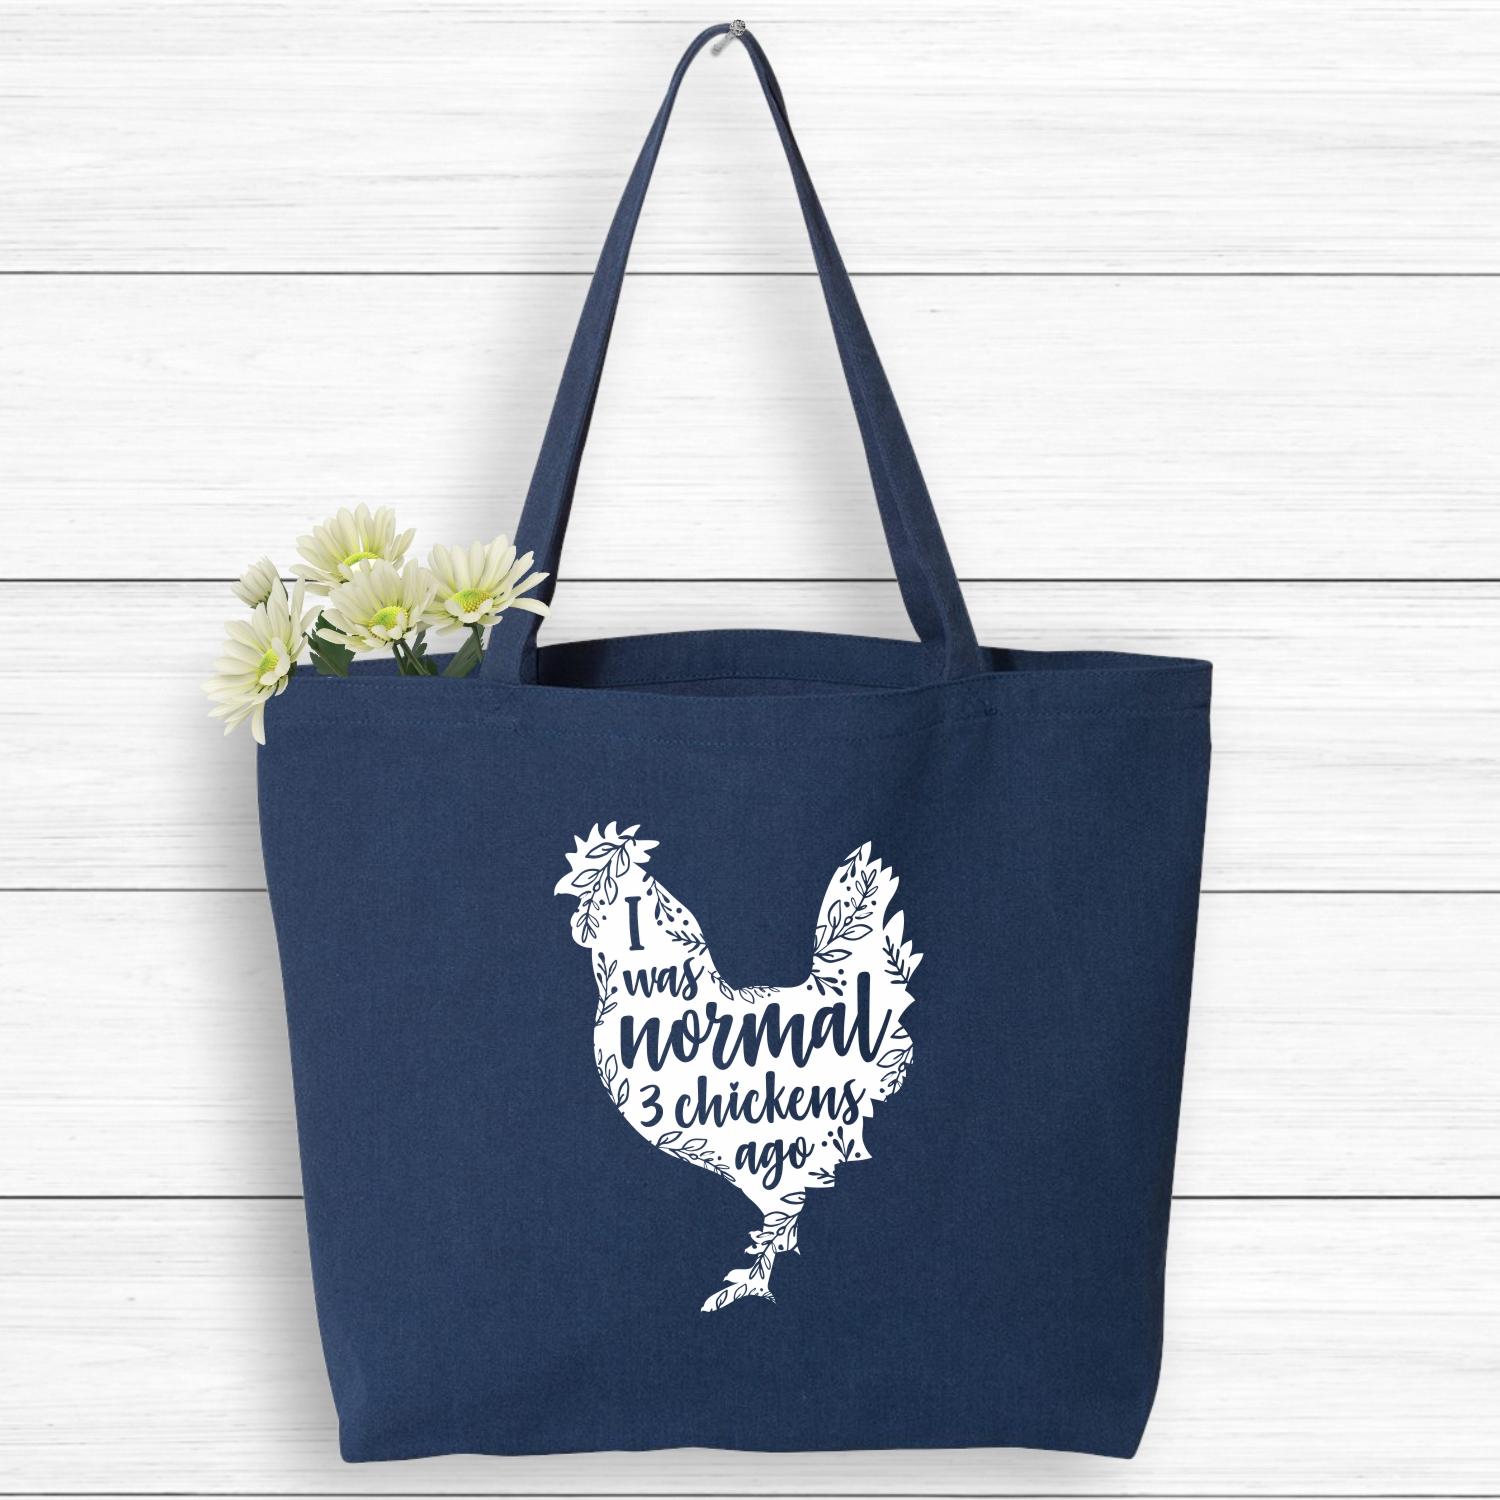 Normal 3 Chickens Ago Tote